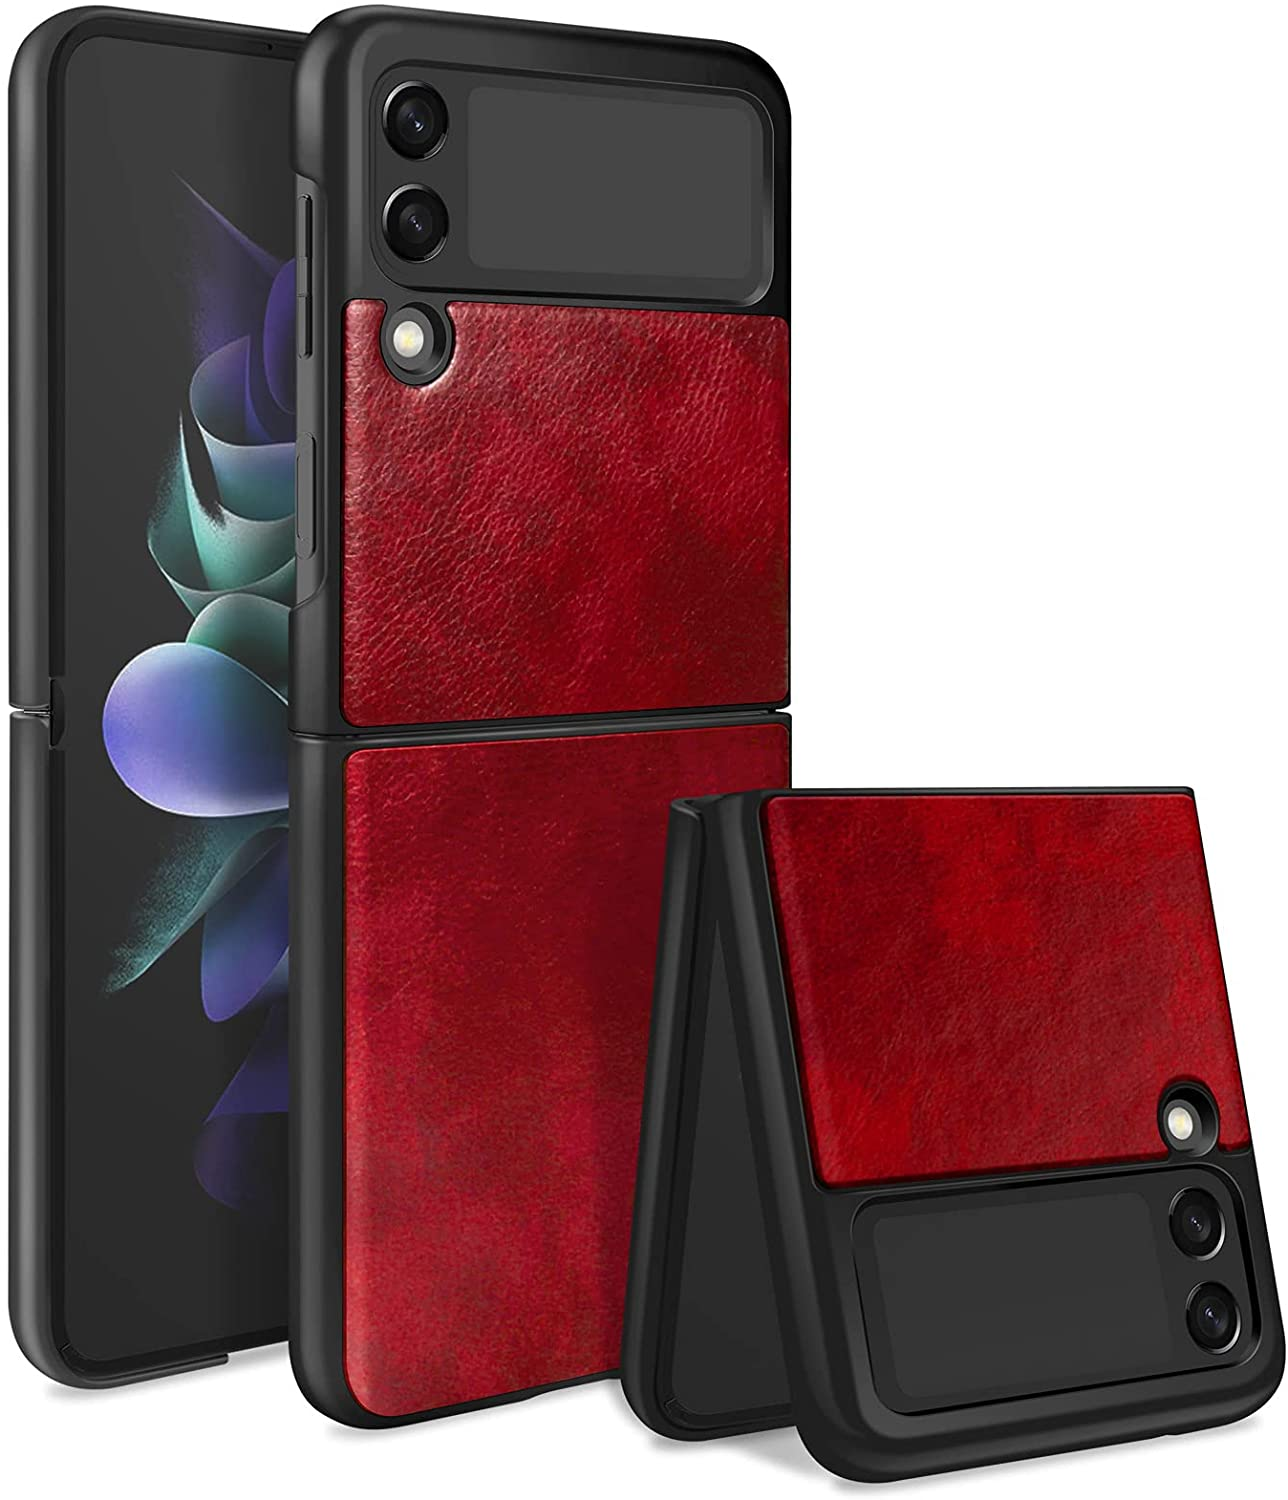 KSWOUS Case for Samsung Galaxy Z Flip 3 Case 5G Leather Hard PC Cover, Heavy Duty Shockproof Non-Slip Grip Protective Shell Stylish Cover Thin Fit Phone Case for Galaxy Z Flip 3 5G, Red